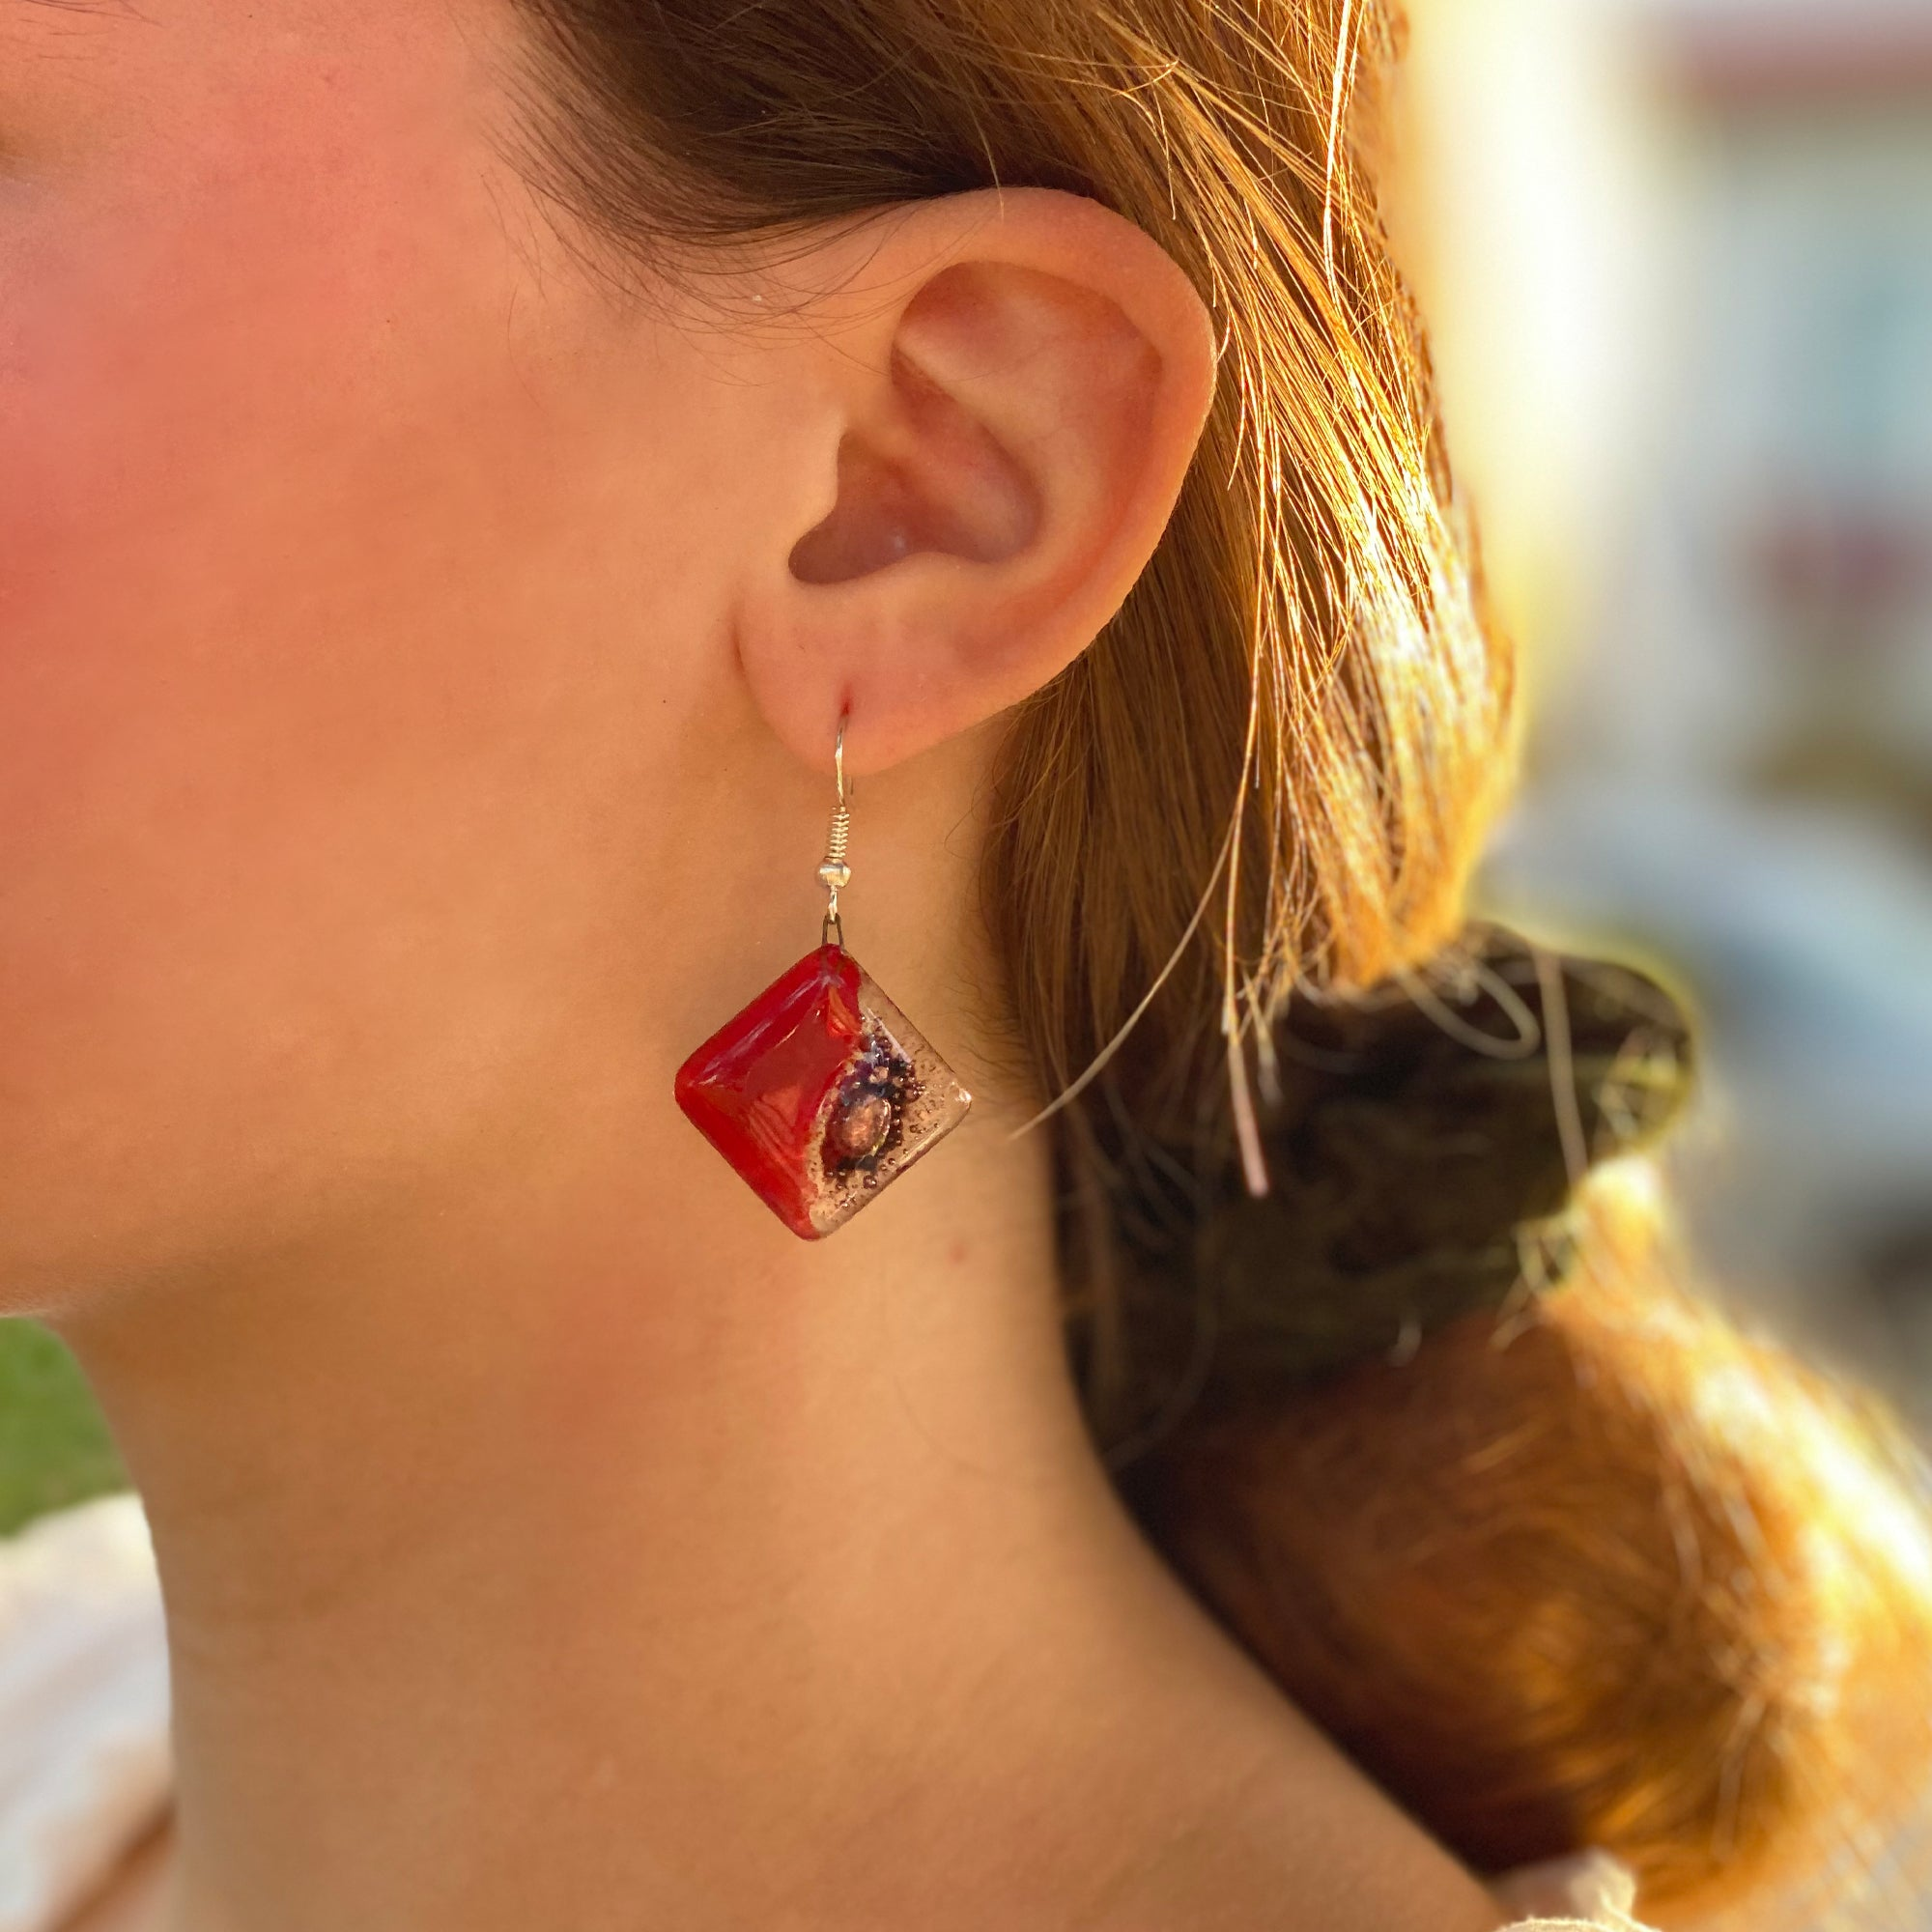 Handmade square glass dangle earrings from Fair Trade group in Chile